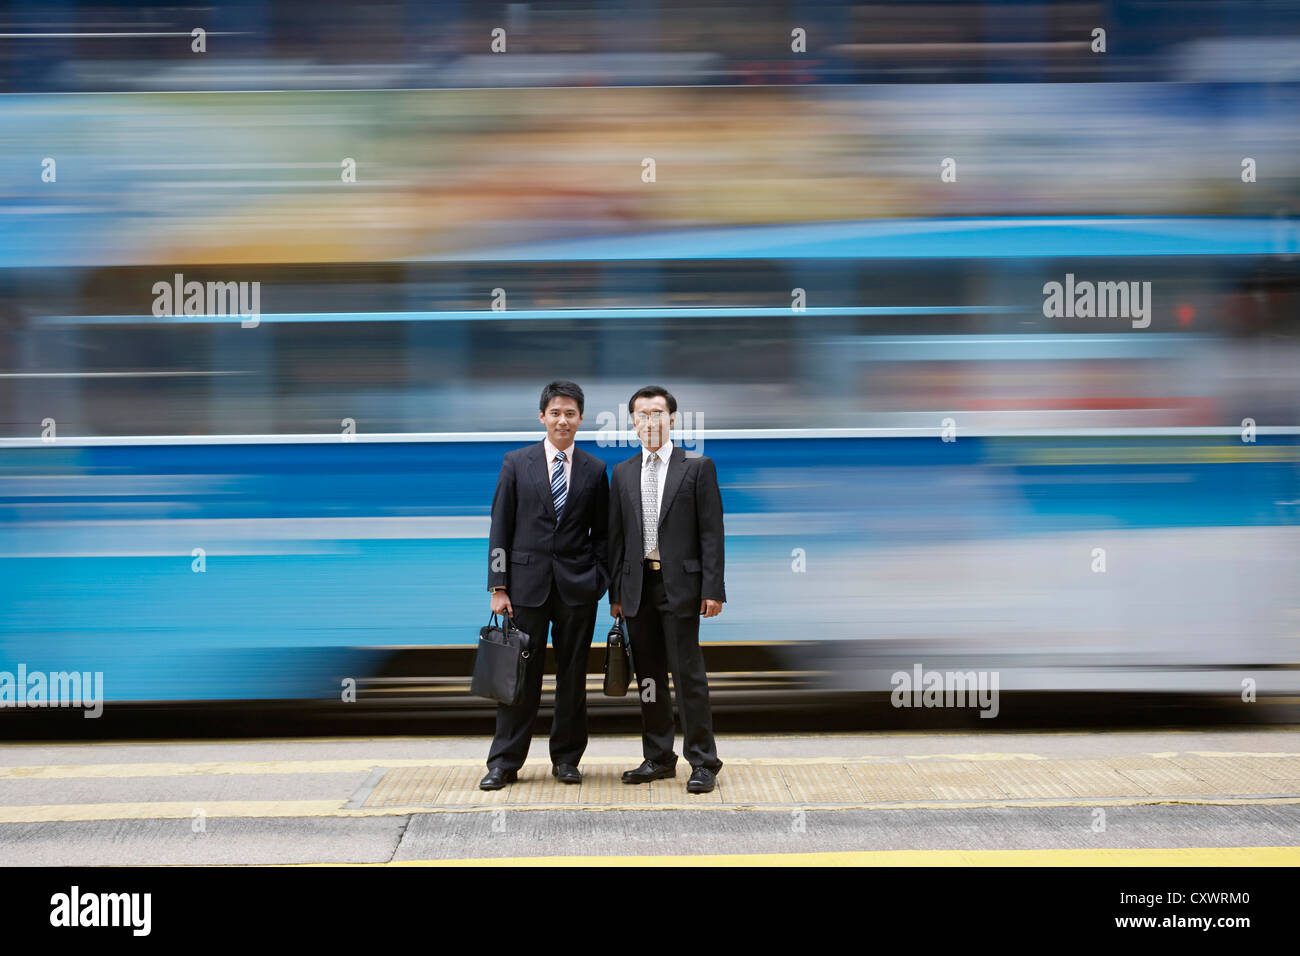 Businessmen standing by blurred bus - Stock Image